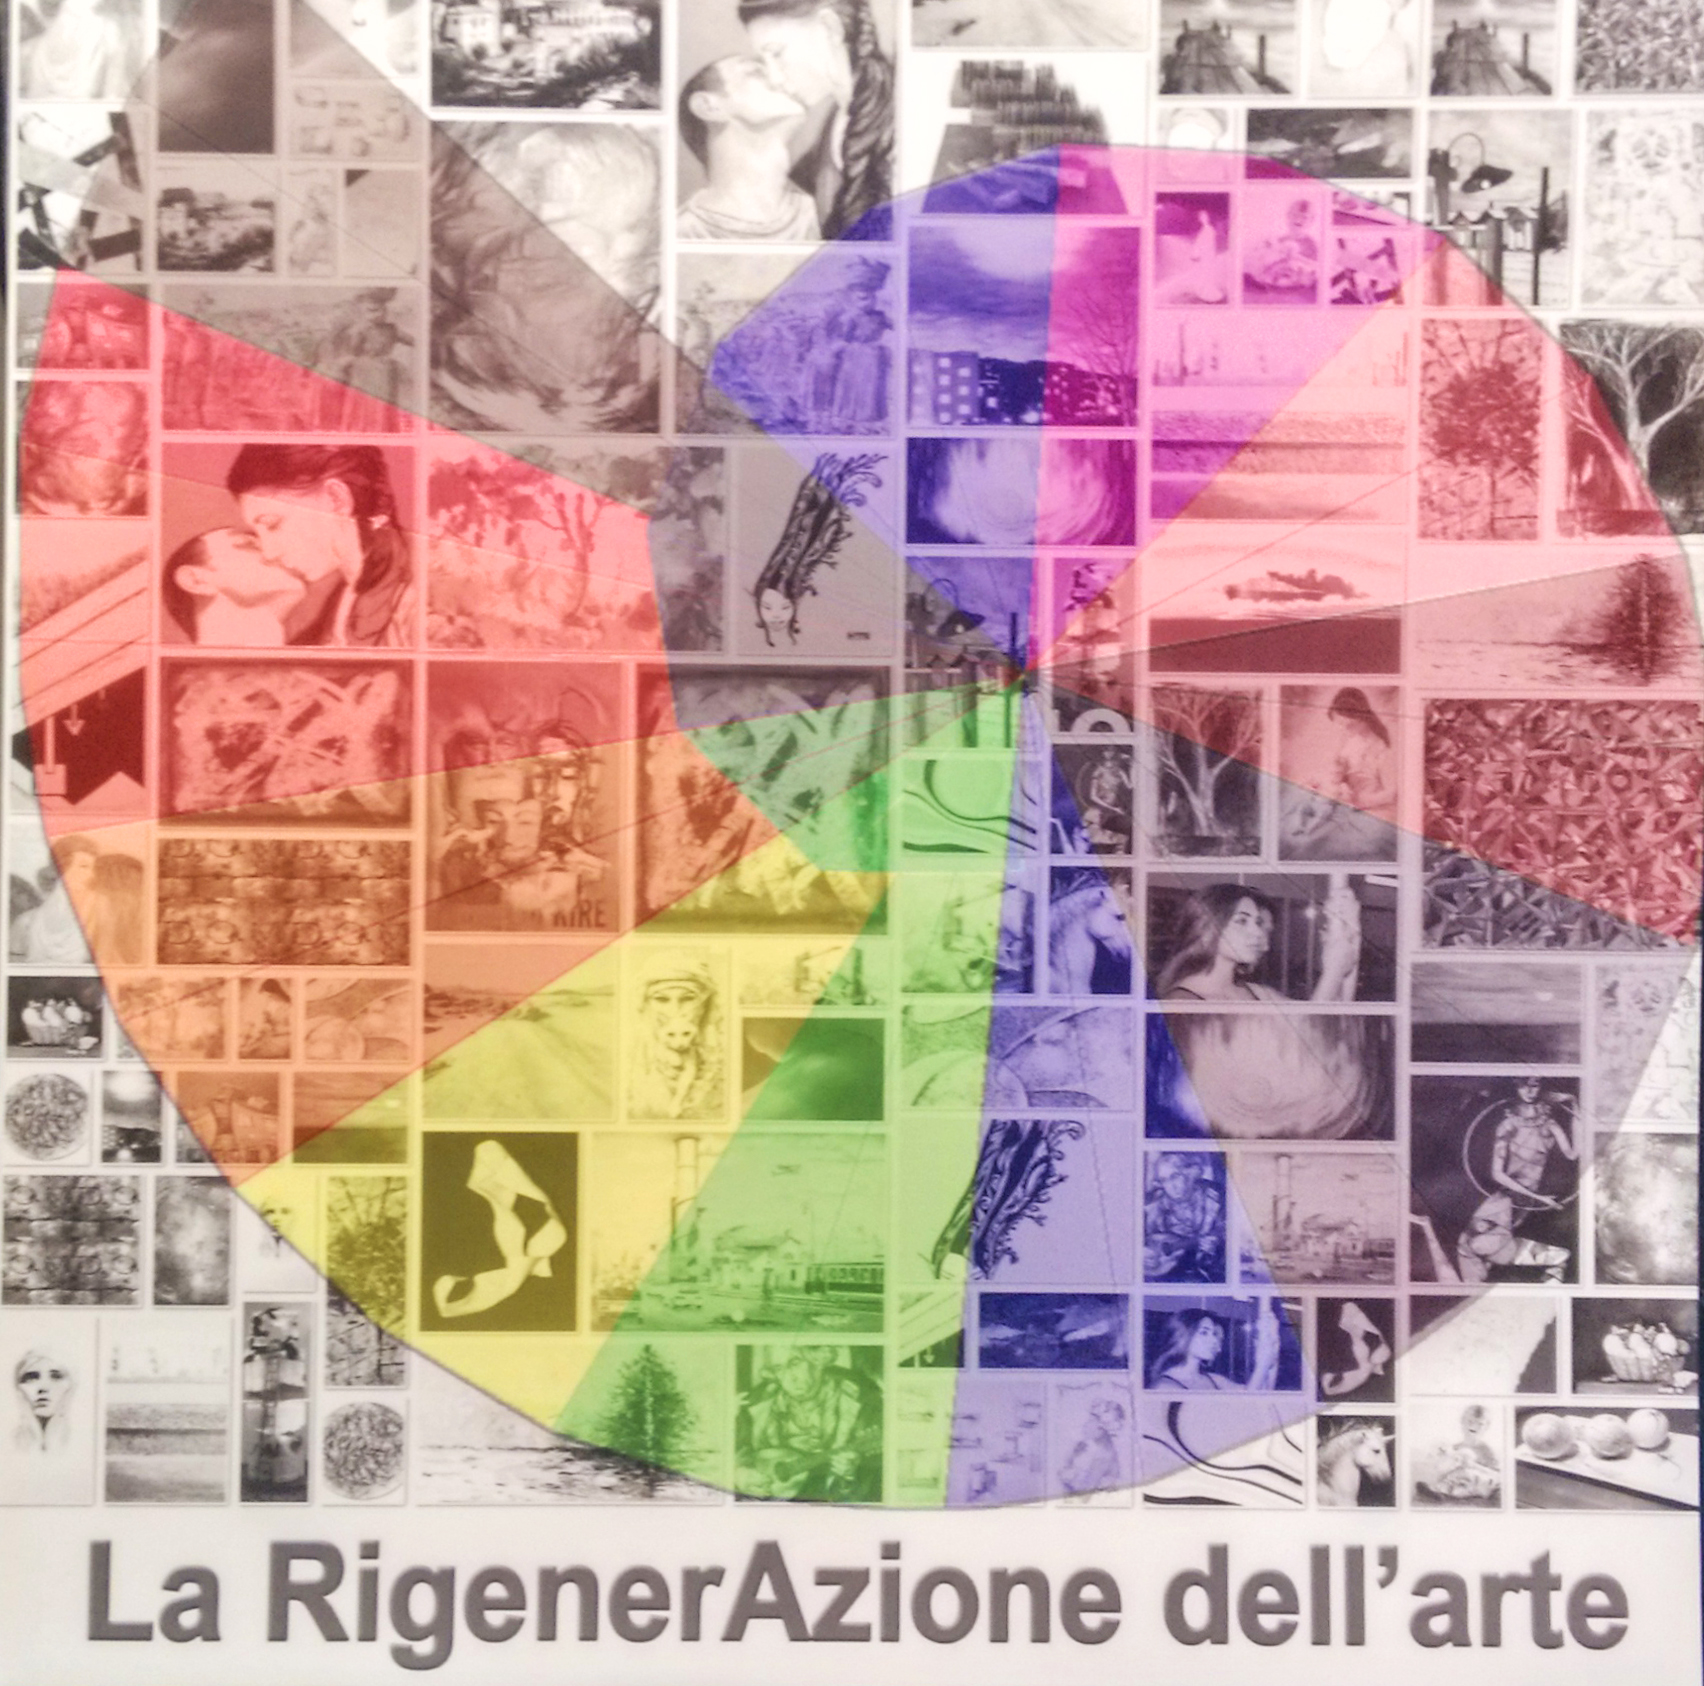 La RigenerAzione dell'Arte|The Regeneration of Art